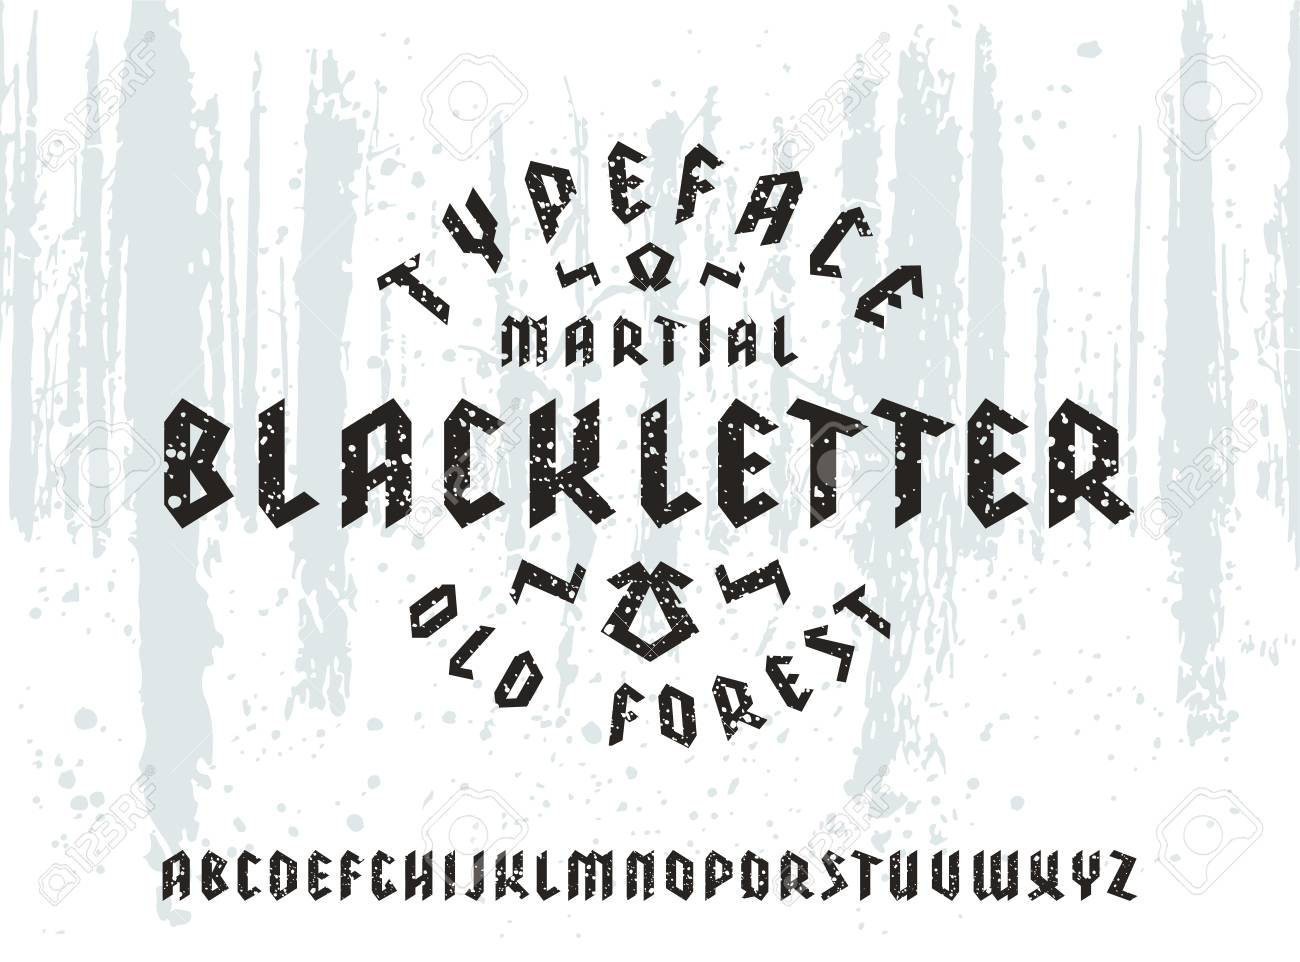 Sanserif Font In Black Letter Style With Spray Texture Gothic Typeface On Forest Background